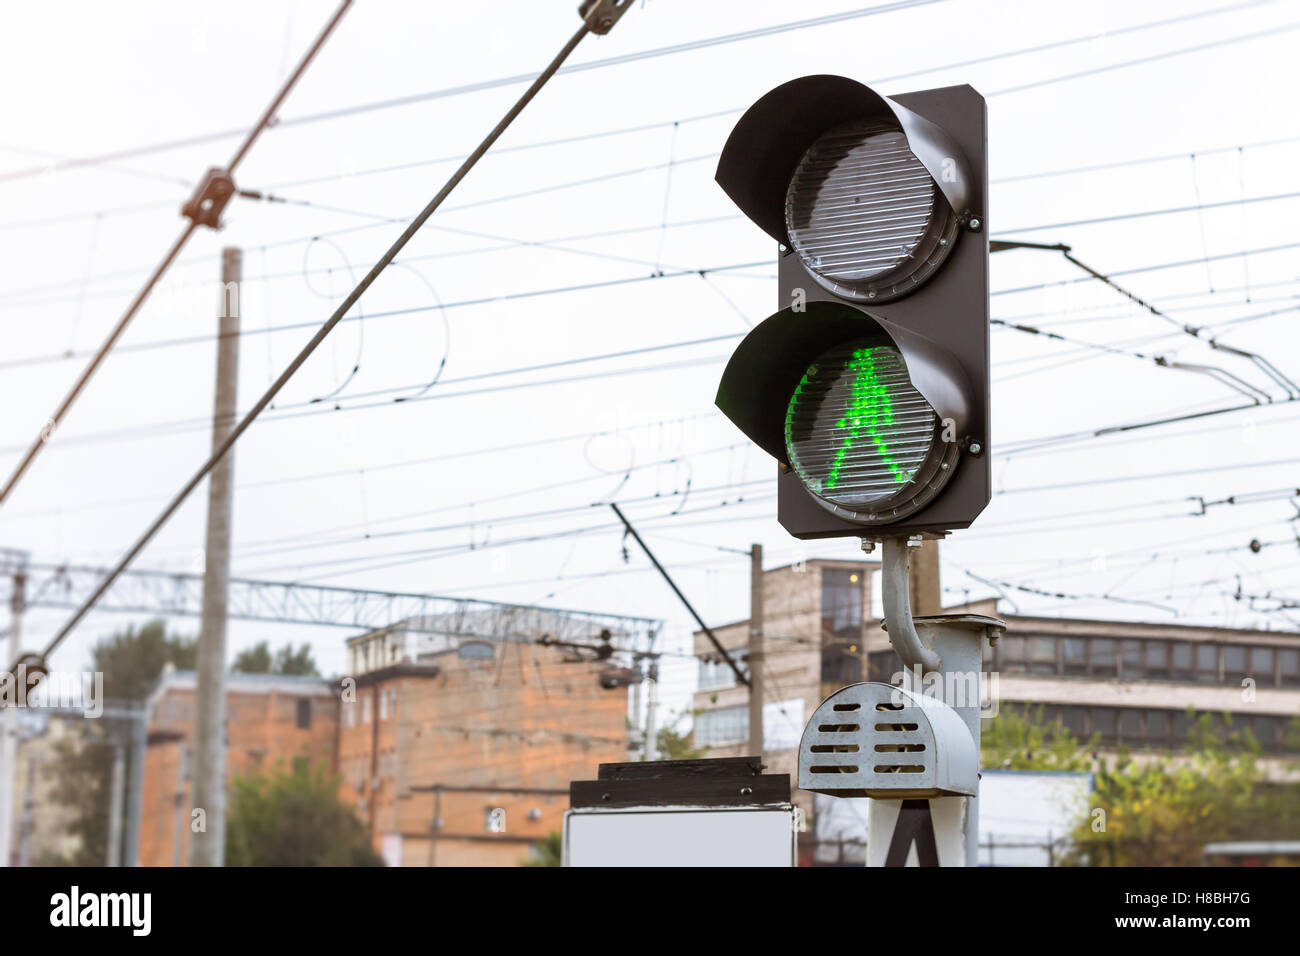 Railway semaphore shines permissive green light. Technical railway station depot. Transport infrastructure on Russia - Stock Image